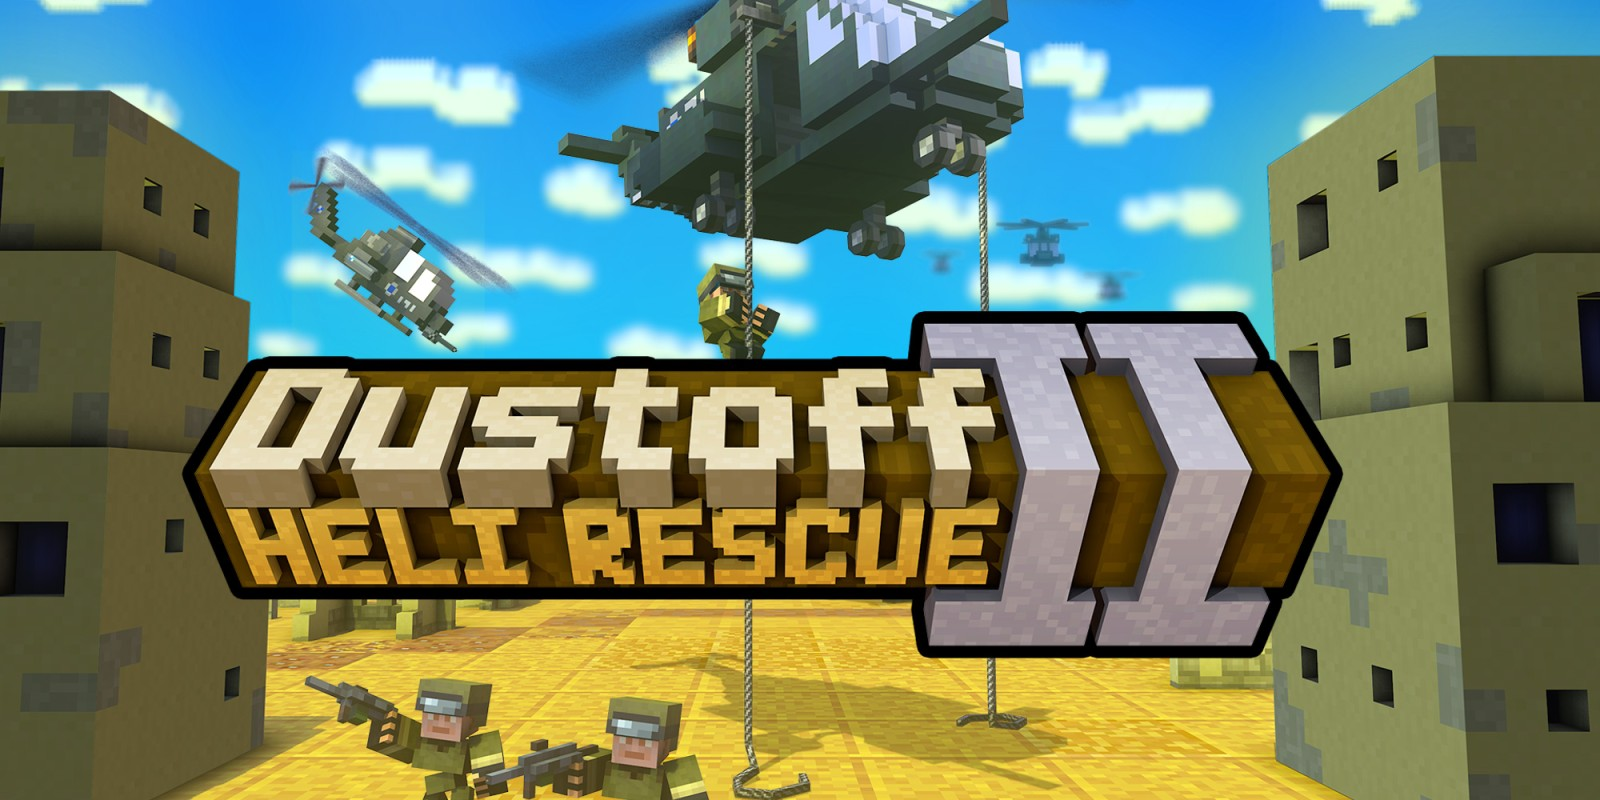 Dustoff Heli Rescue 2